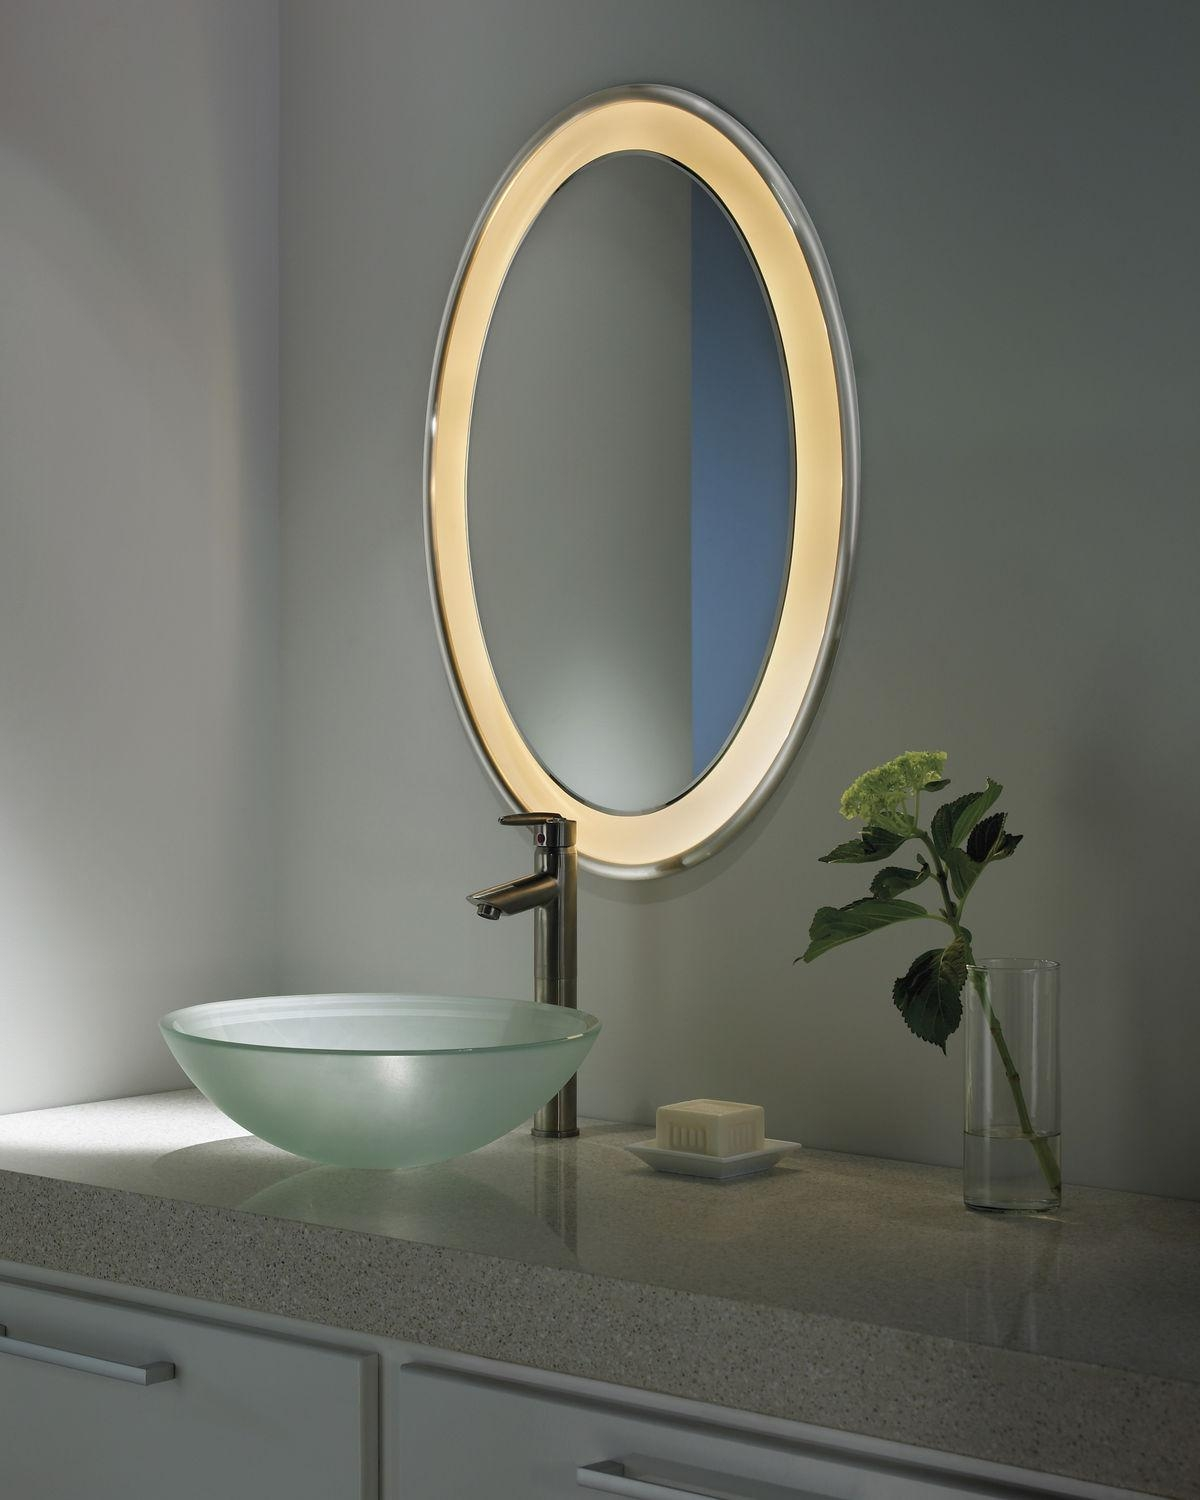 Ideas Lighted Bathroom Wall Mirror With Bathroom Wall Mirrors With Lights (Image 13 of 20)